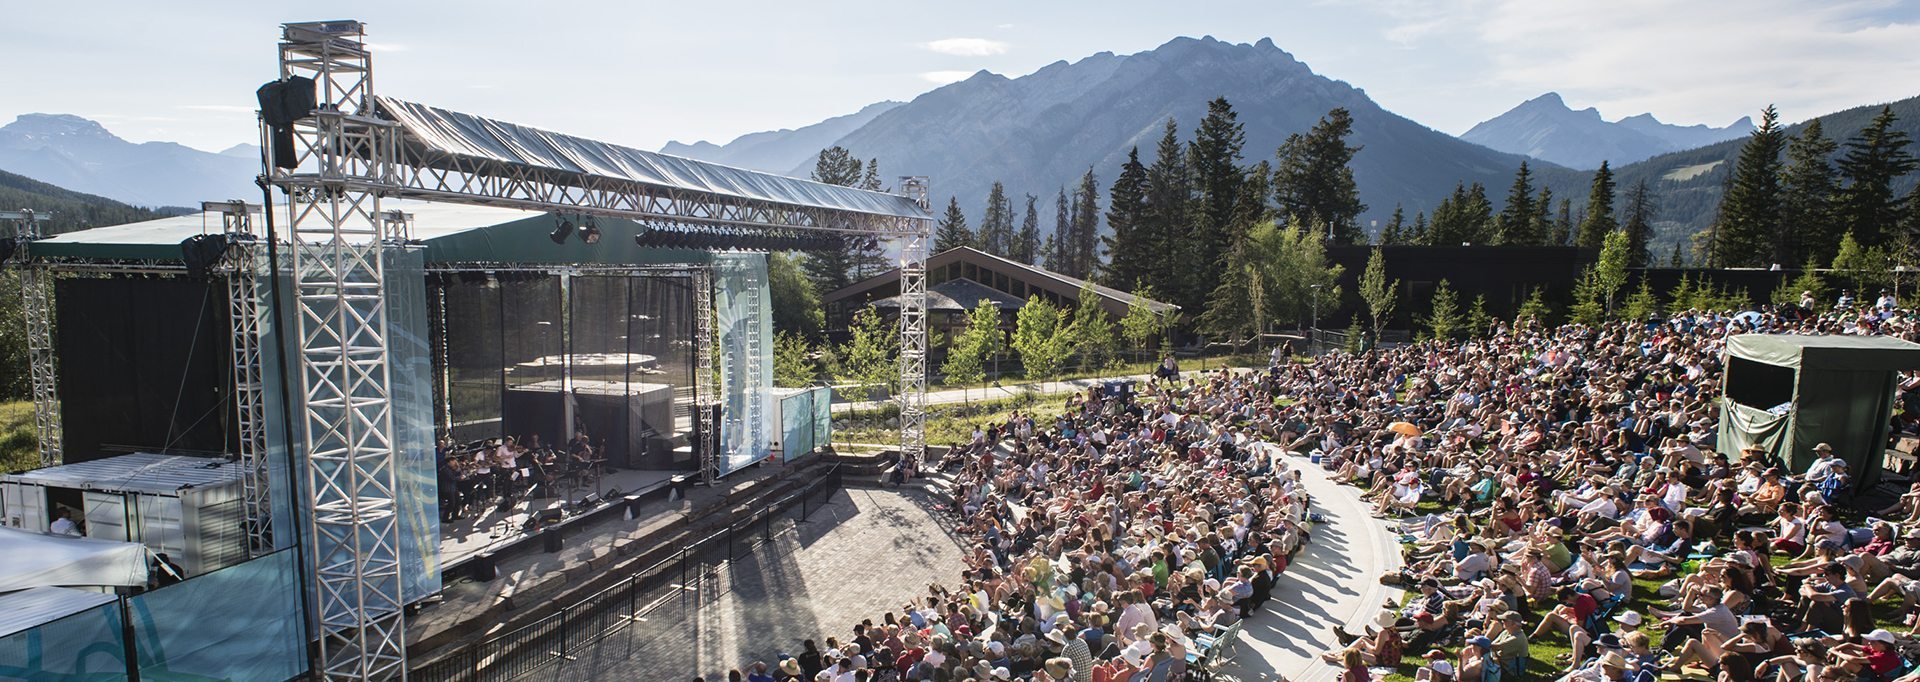 What's On in Banff at the Banff Centre